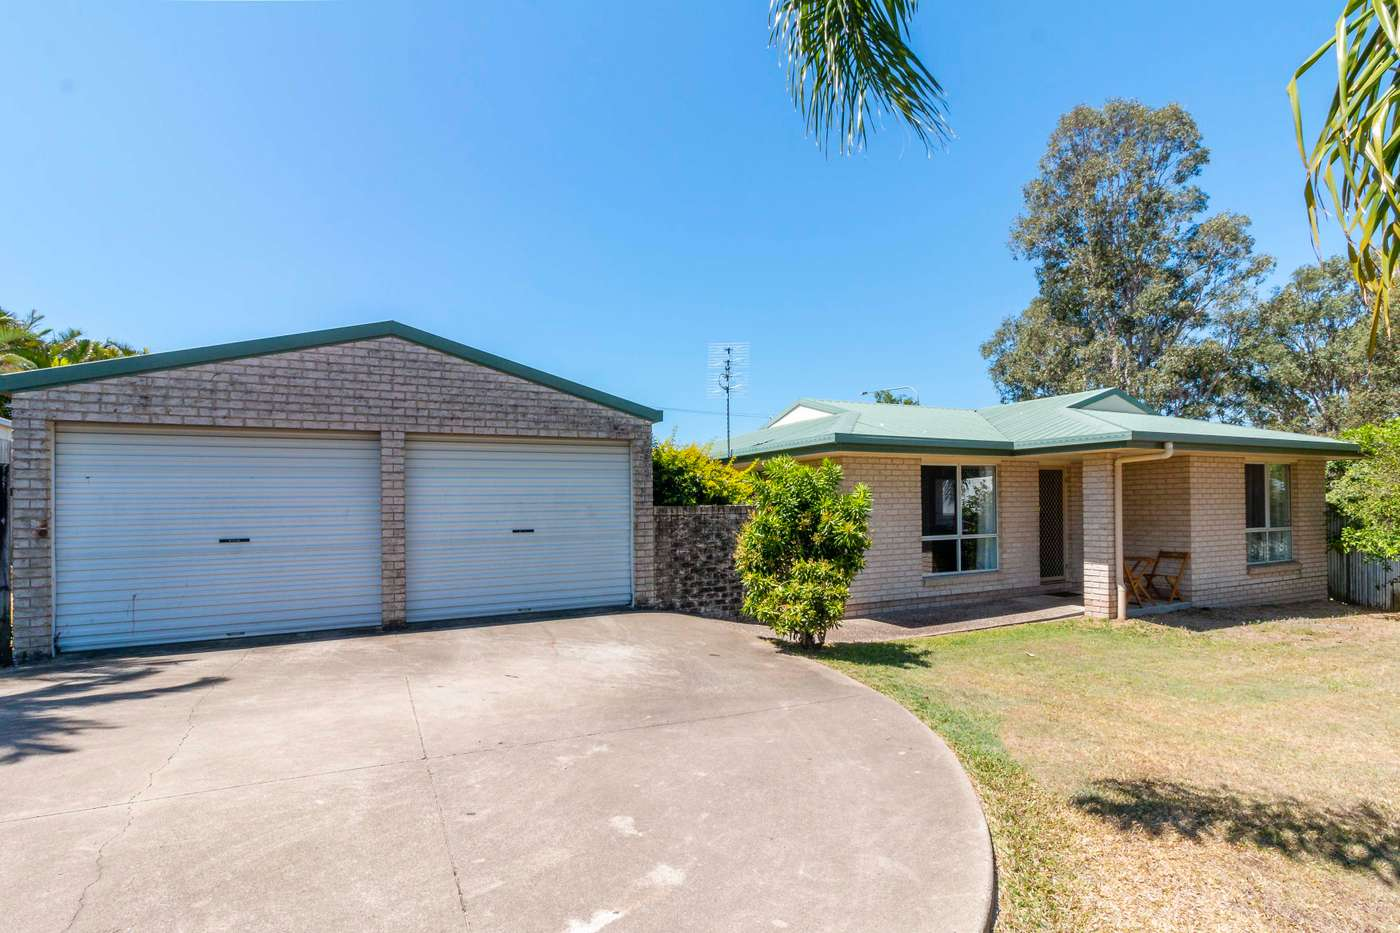 Main view of Homely house listing, 66 Birrabeen Avenue, Pialba, QLD 4655